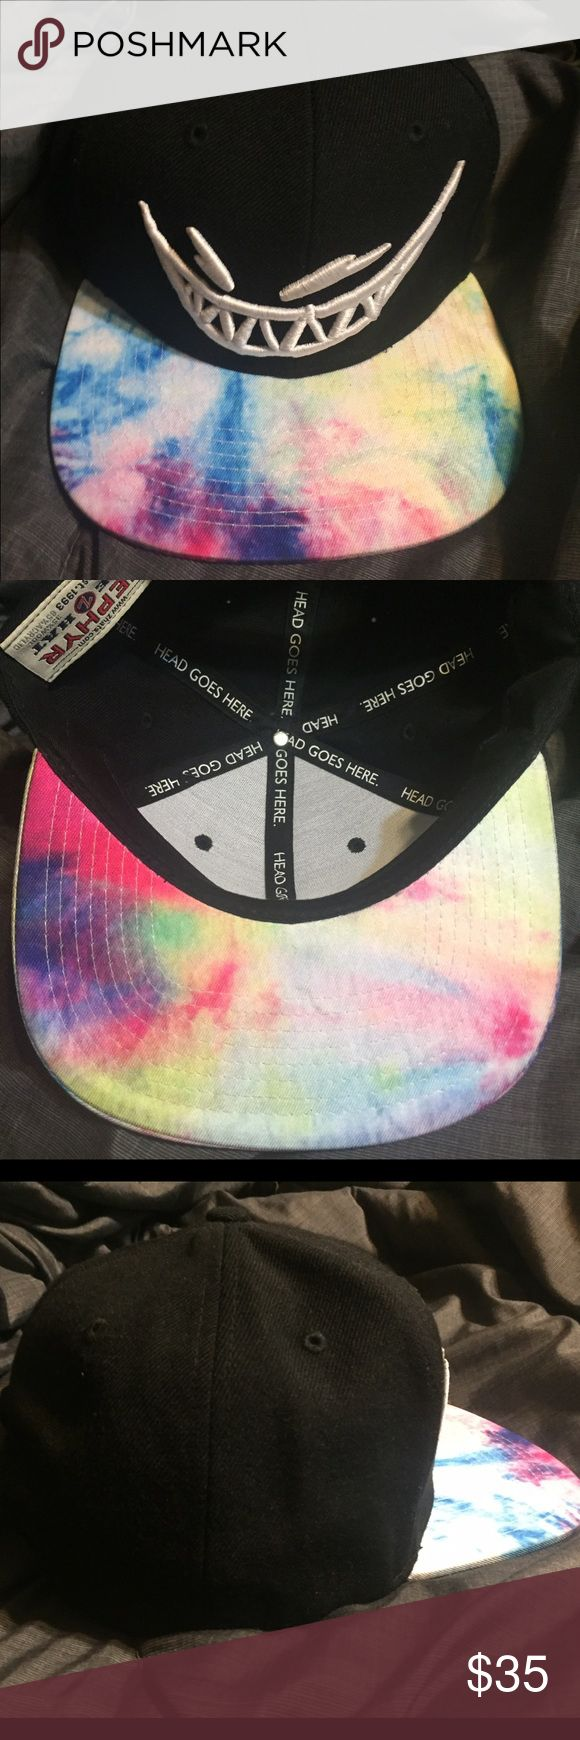 """Limited Edition """"Feed Me"""" snapback Limited Edition """"Feed Me"""" Snapback. Official """"Psychedelic Journey"""" tour merchandise. 3D embroidered white logo on the front. Tie-dye bill on an all black snapback hat. Never worn Accessories Hats"""